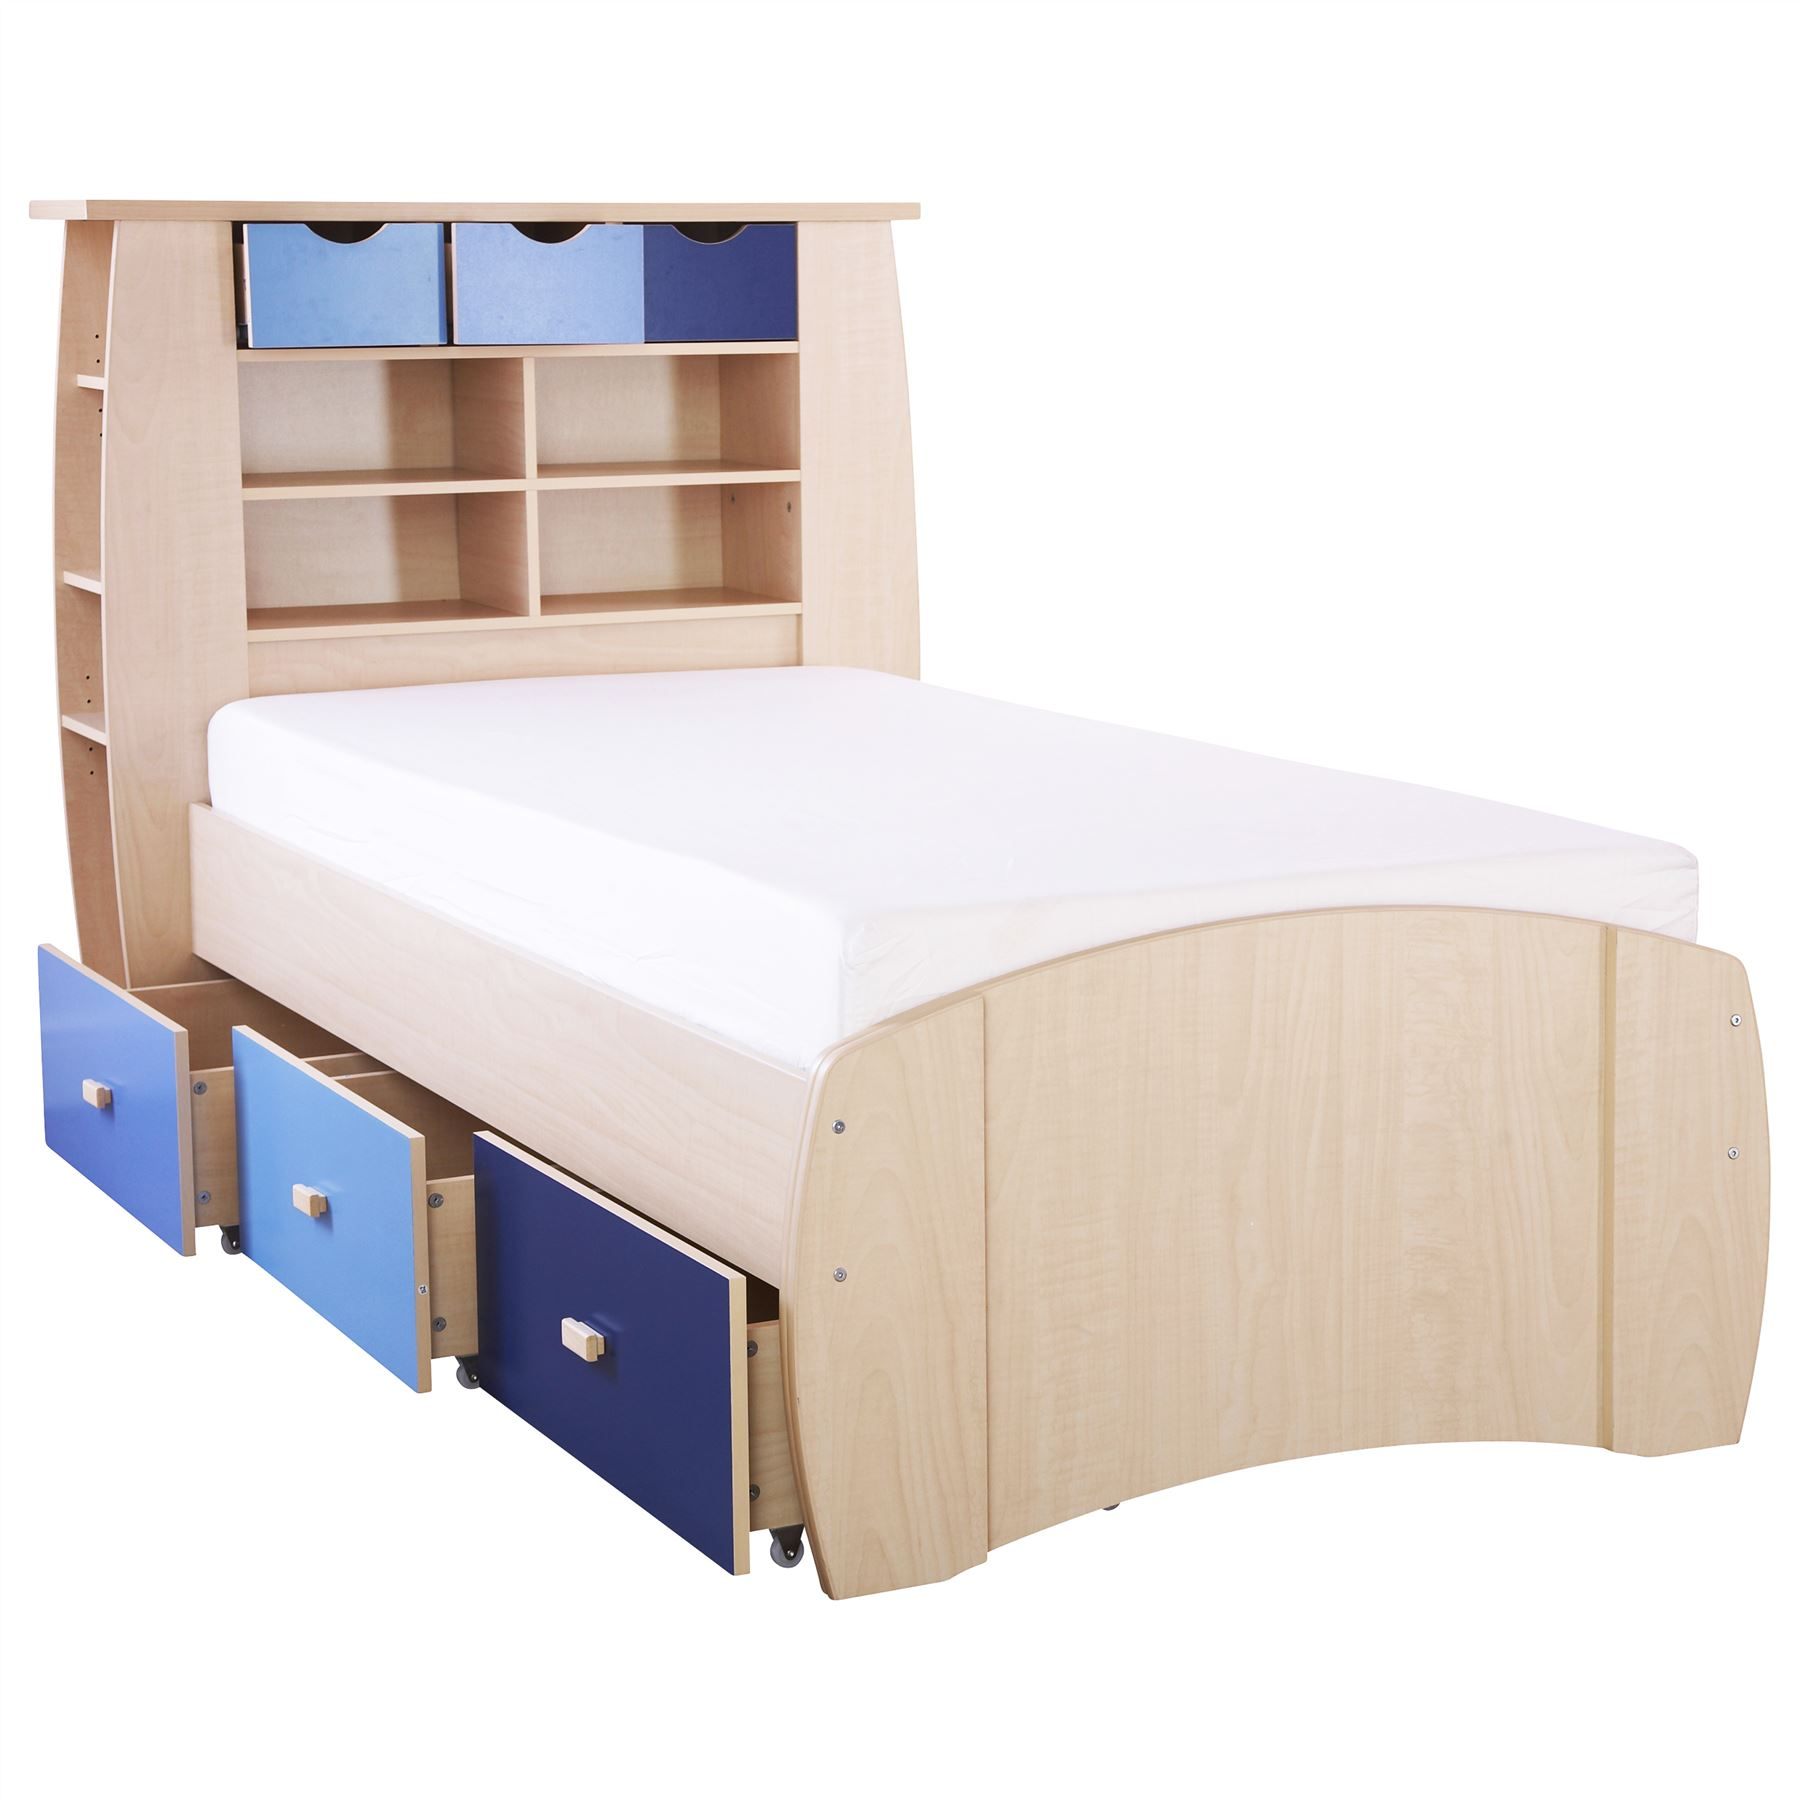 Cheap kids beds kids bunk beds with storage bedroom for Affordable bedroom furniture sydney